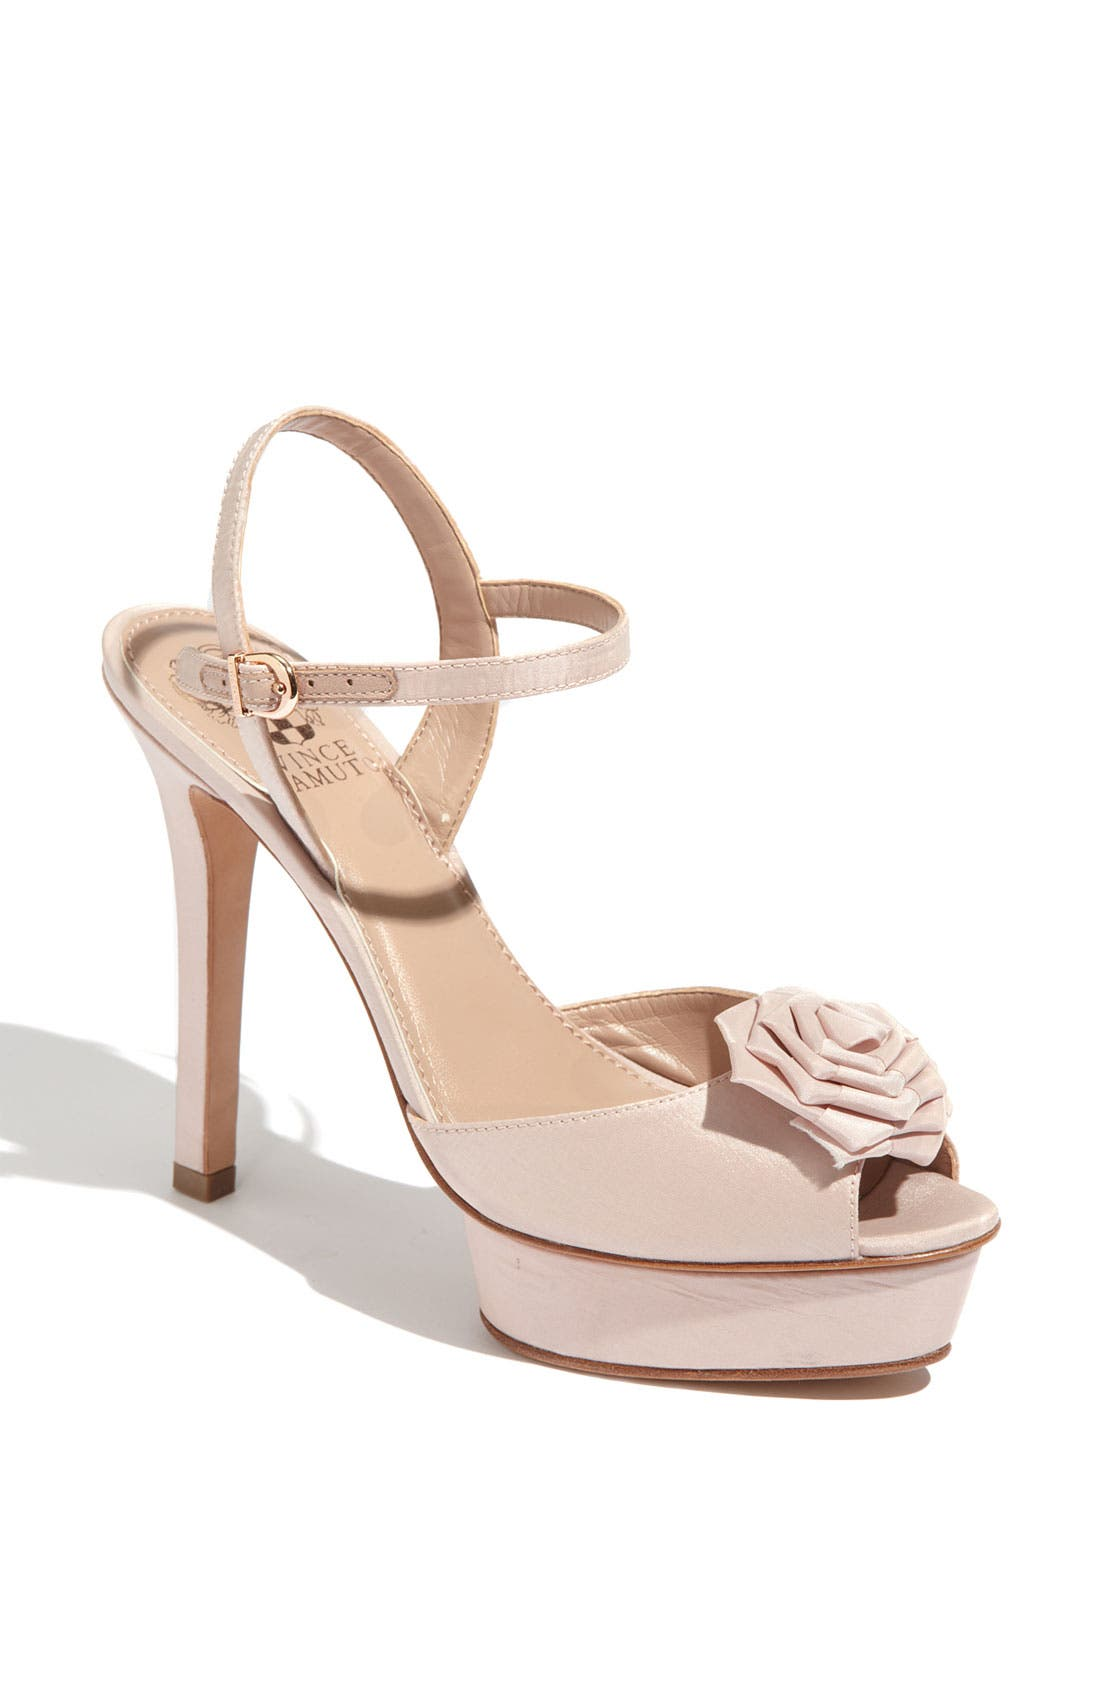 Main Image - Vince Camuto 'Lively' Sandal